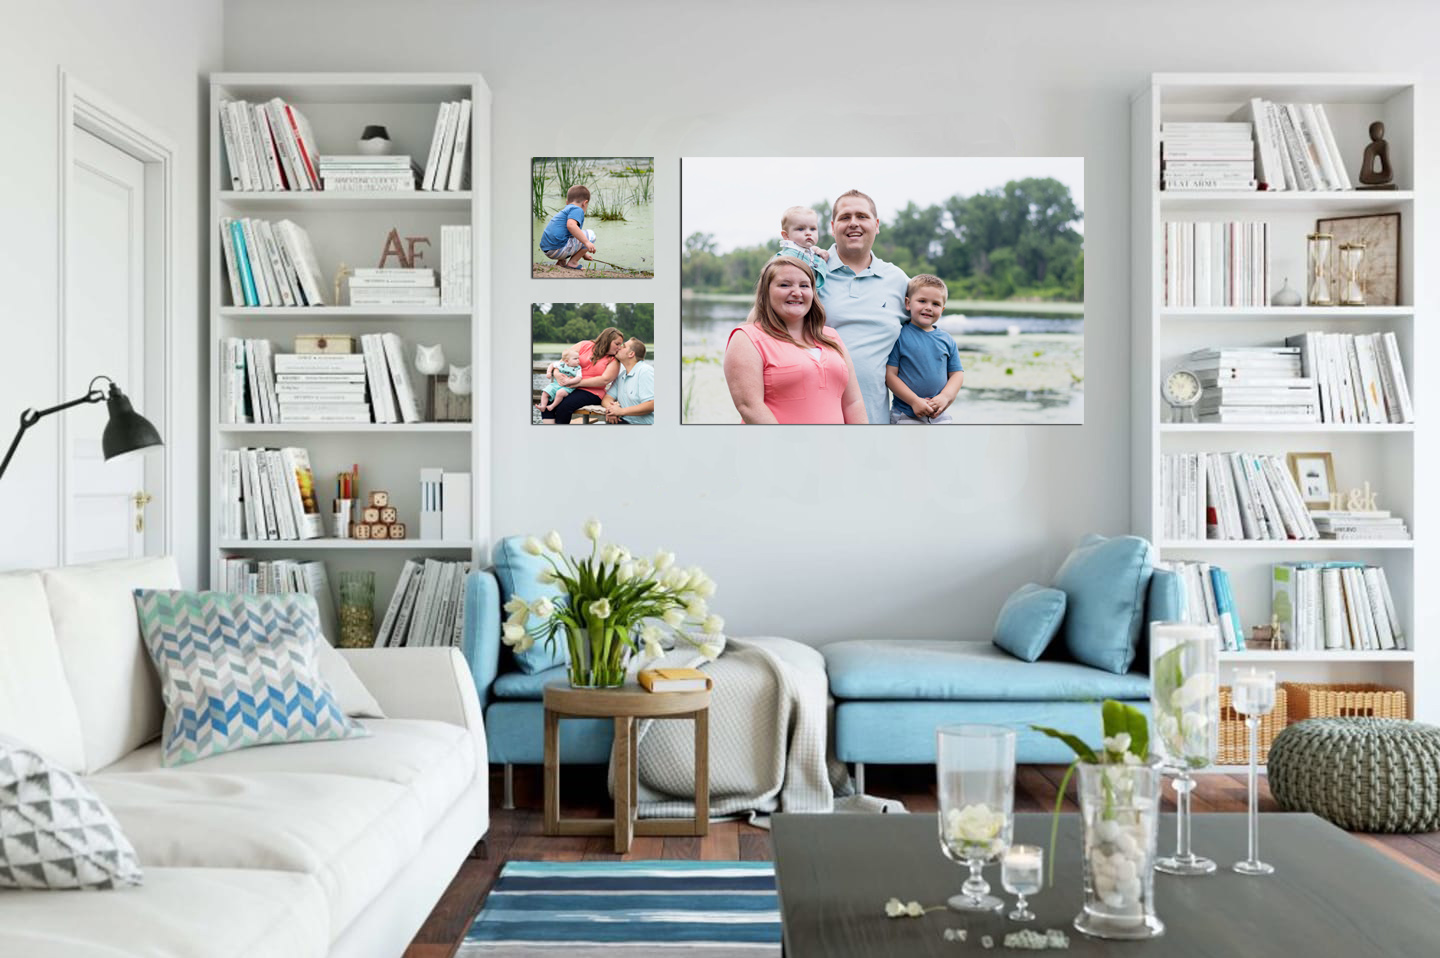 family portraits that coordinate to home design is a part of full service photographer services